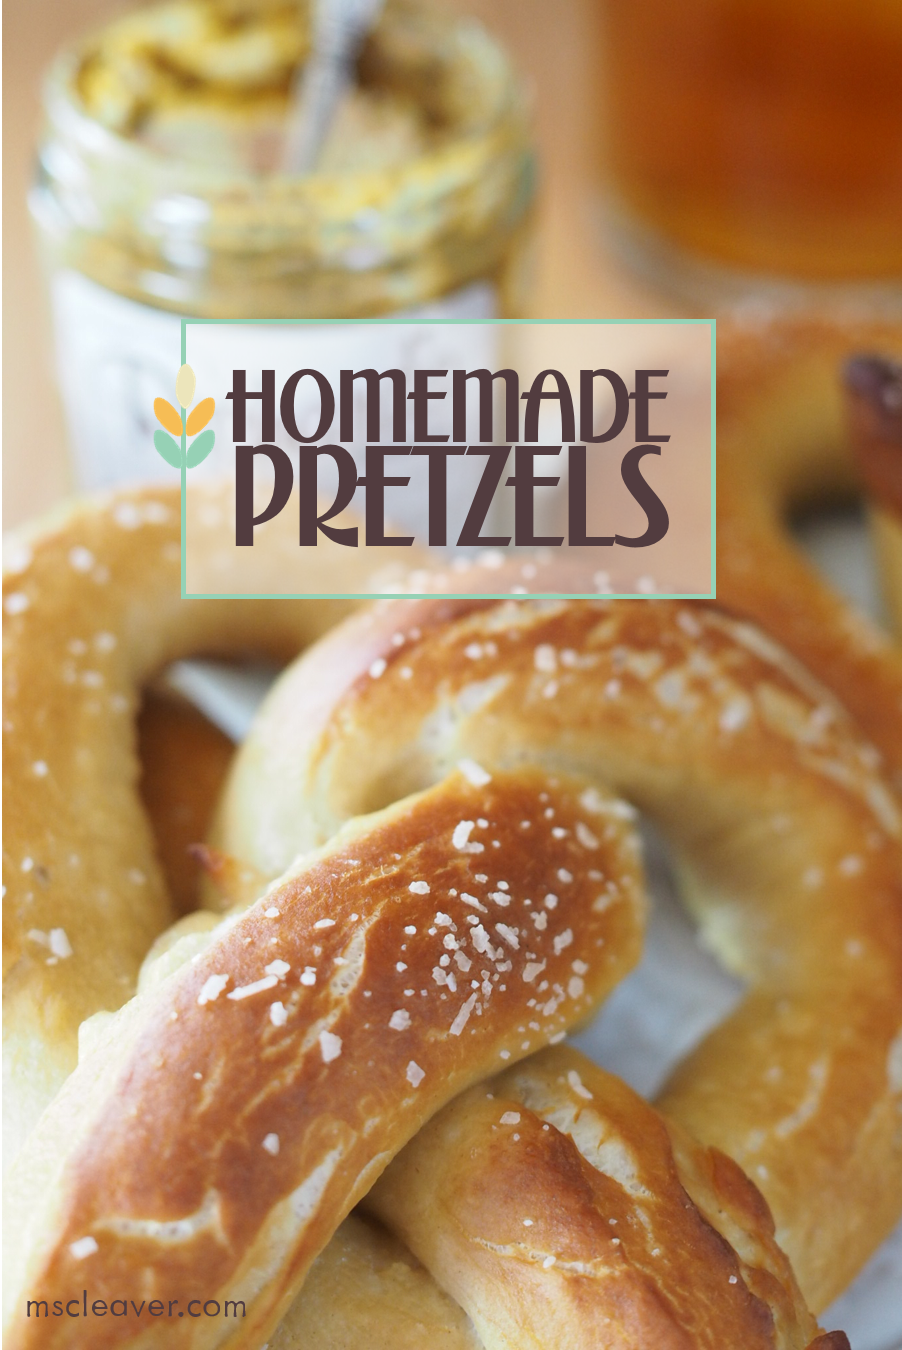 Homemade Pretzel Recipe 1.png